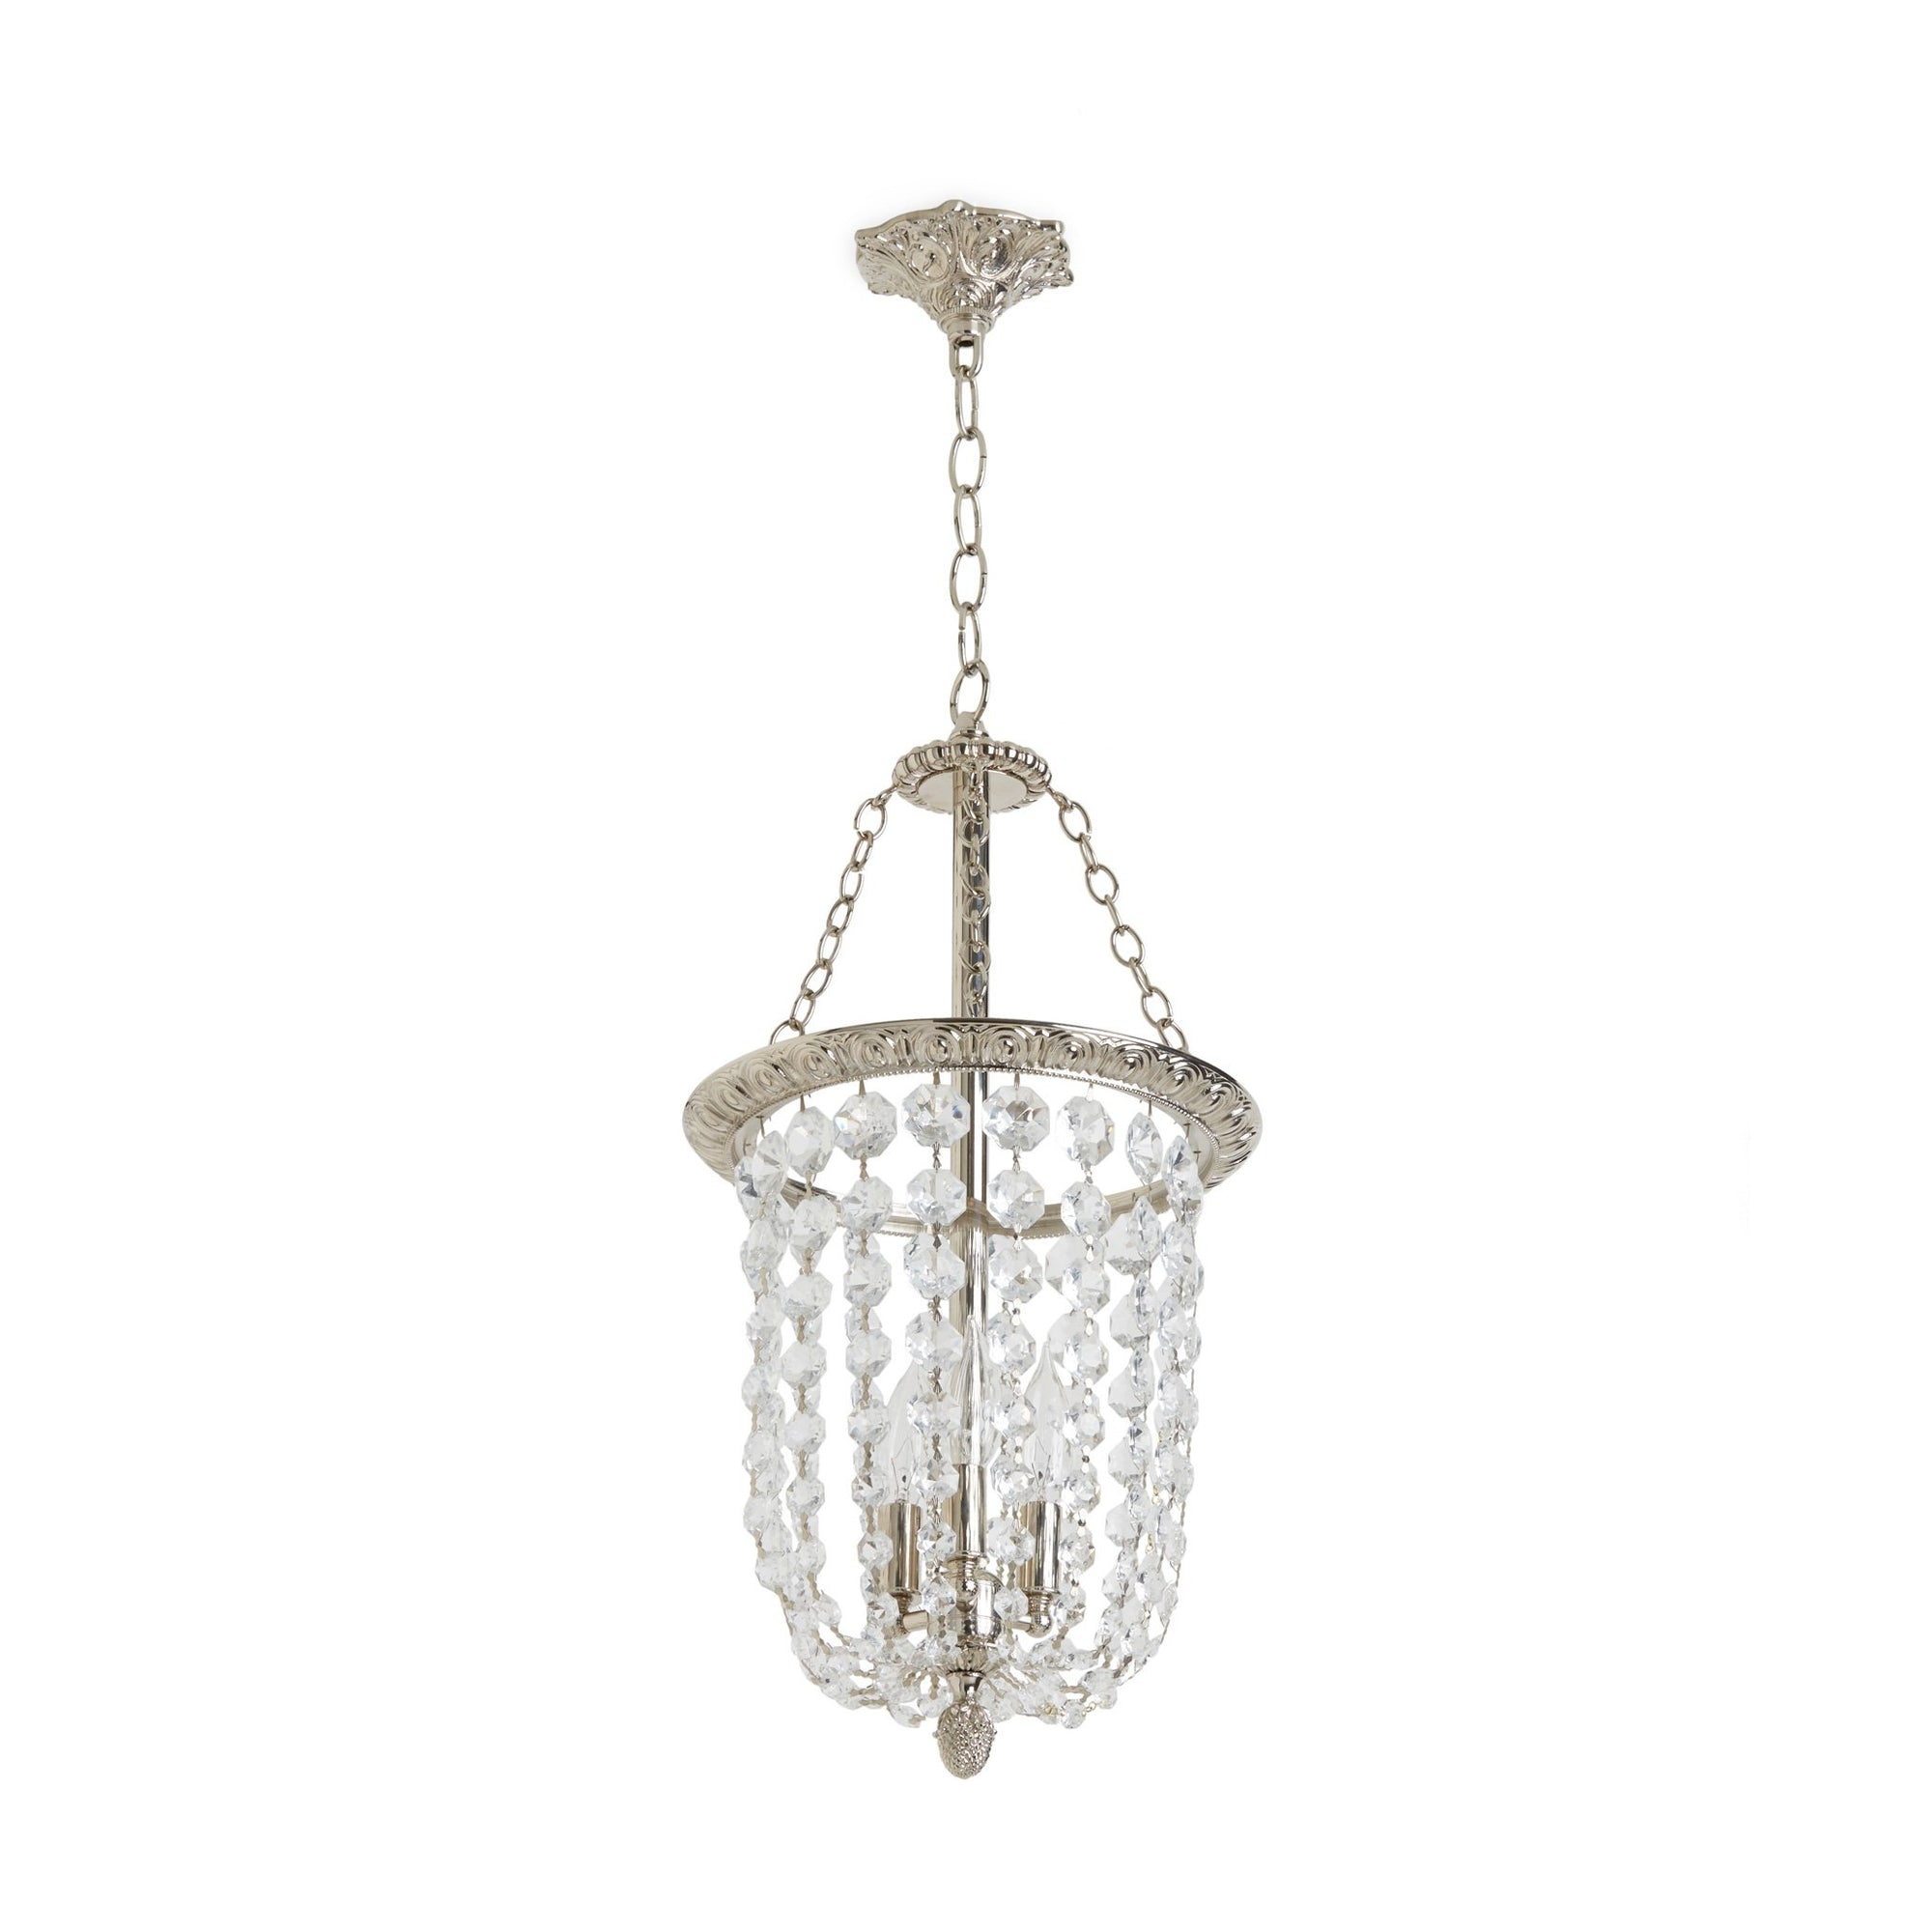 7131-PNDT-DRPD-PN Sherle Wagner International Egg & Dart Pendant Light with Draped Crystals in Gold plate metal finish